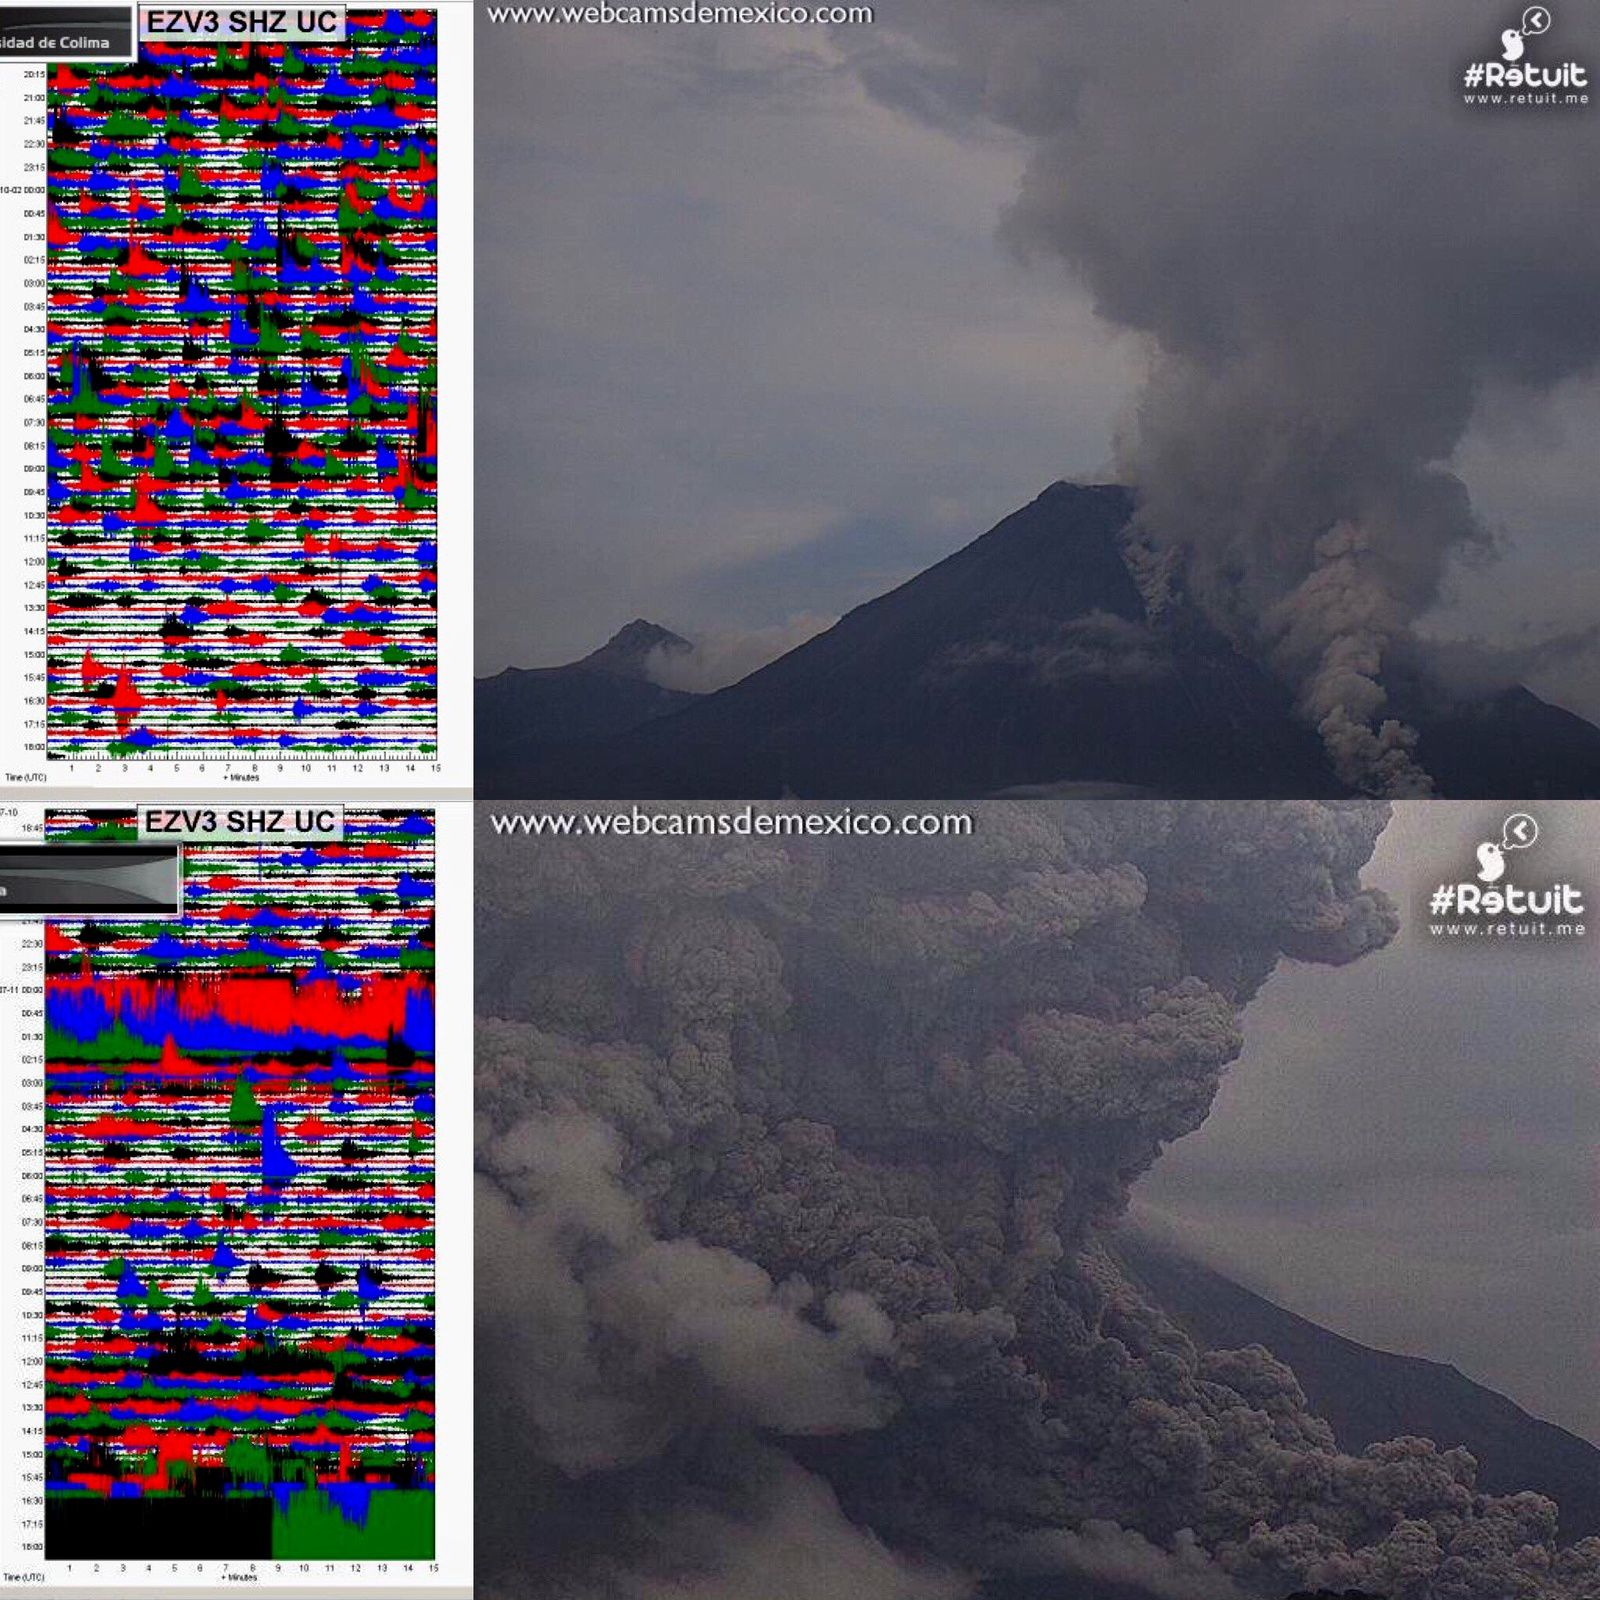 Colima - comparisons of seismic registers and visual observations between the 2015 eruption and that of 10/02/2016, much more energetic - Doc. volcano de Colima / Twitter